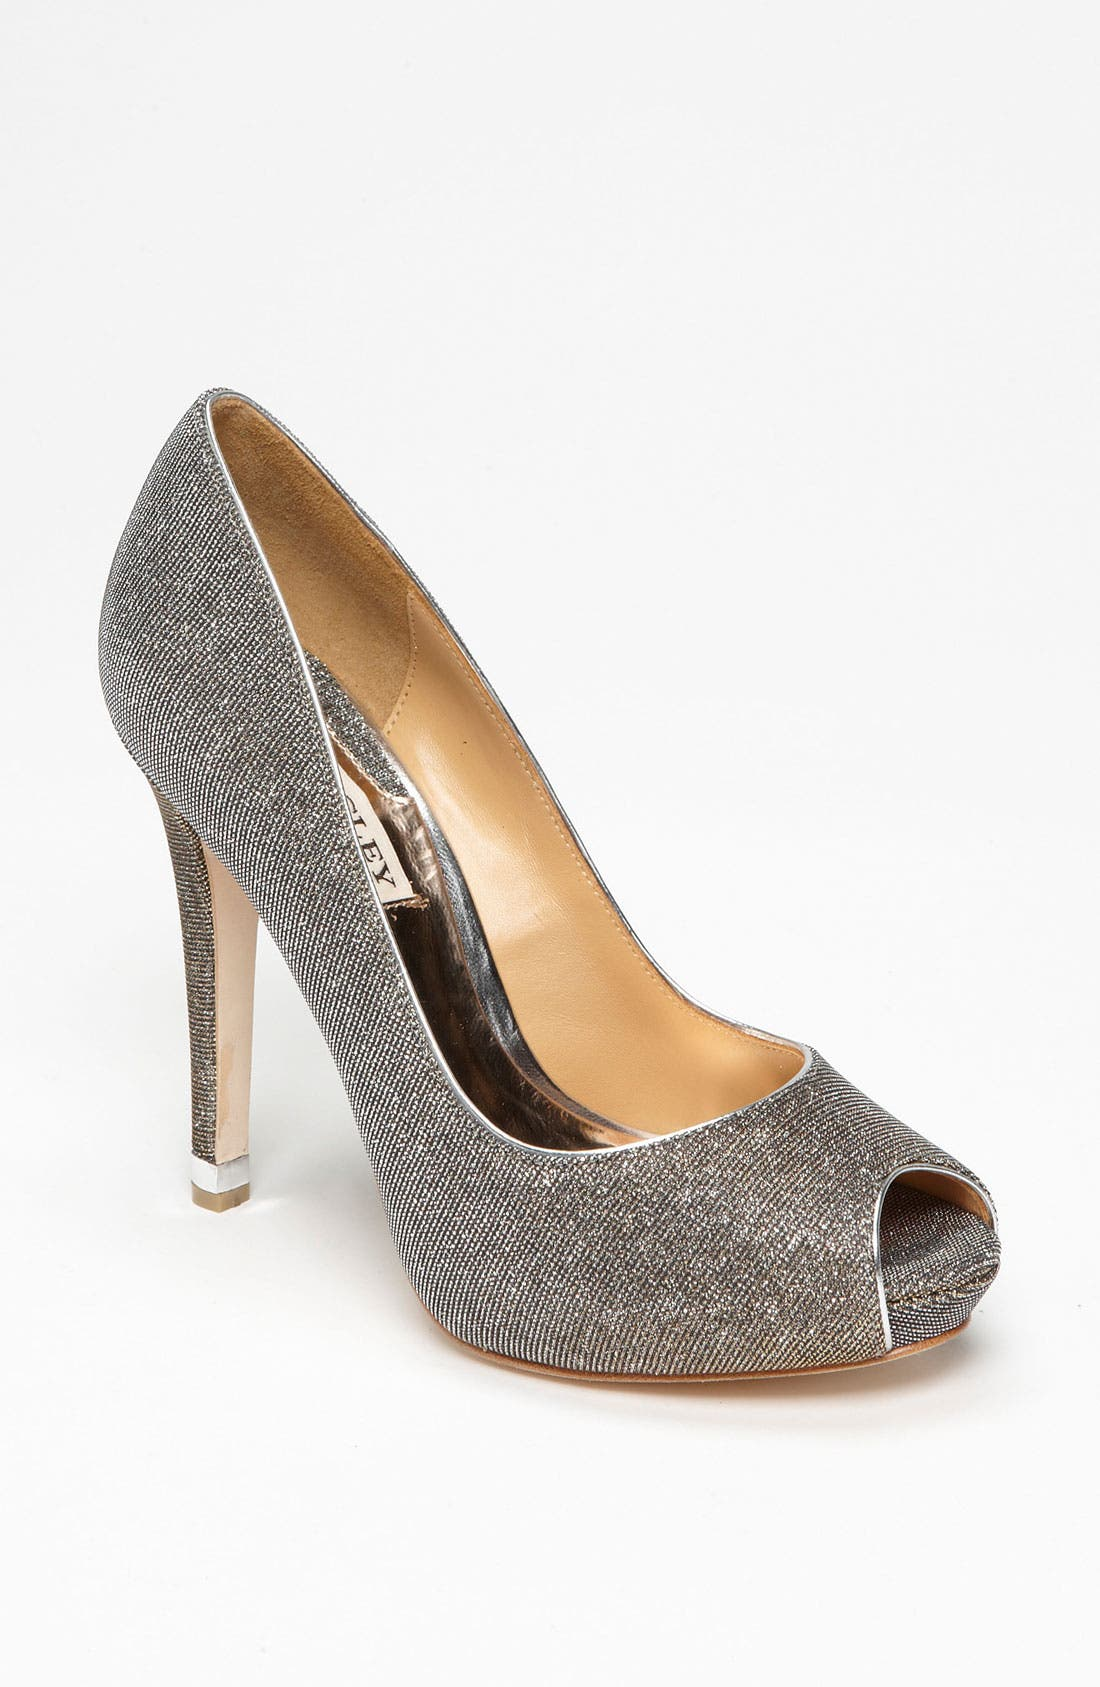 Alternate Image 1 Selected - Badgley Mischka 'Humbie IV' Pump